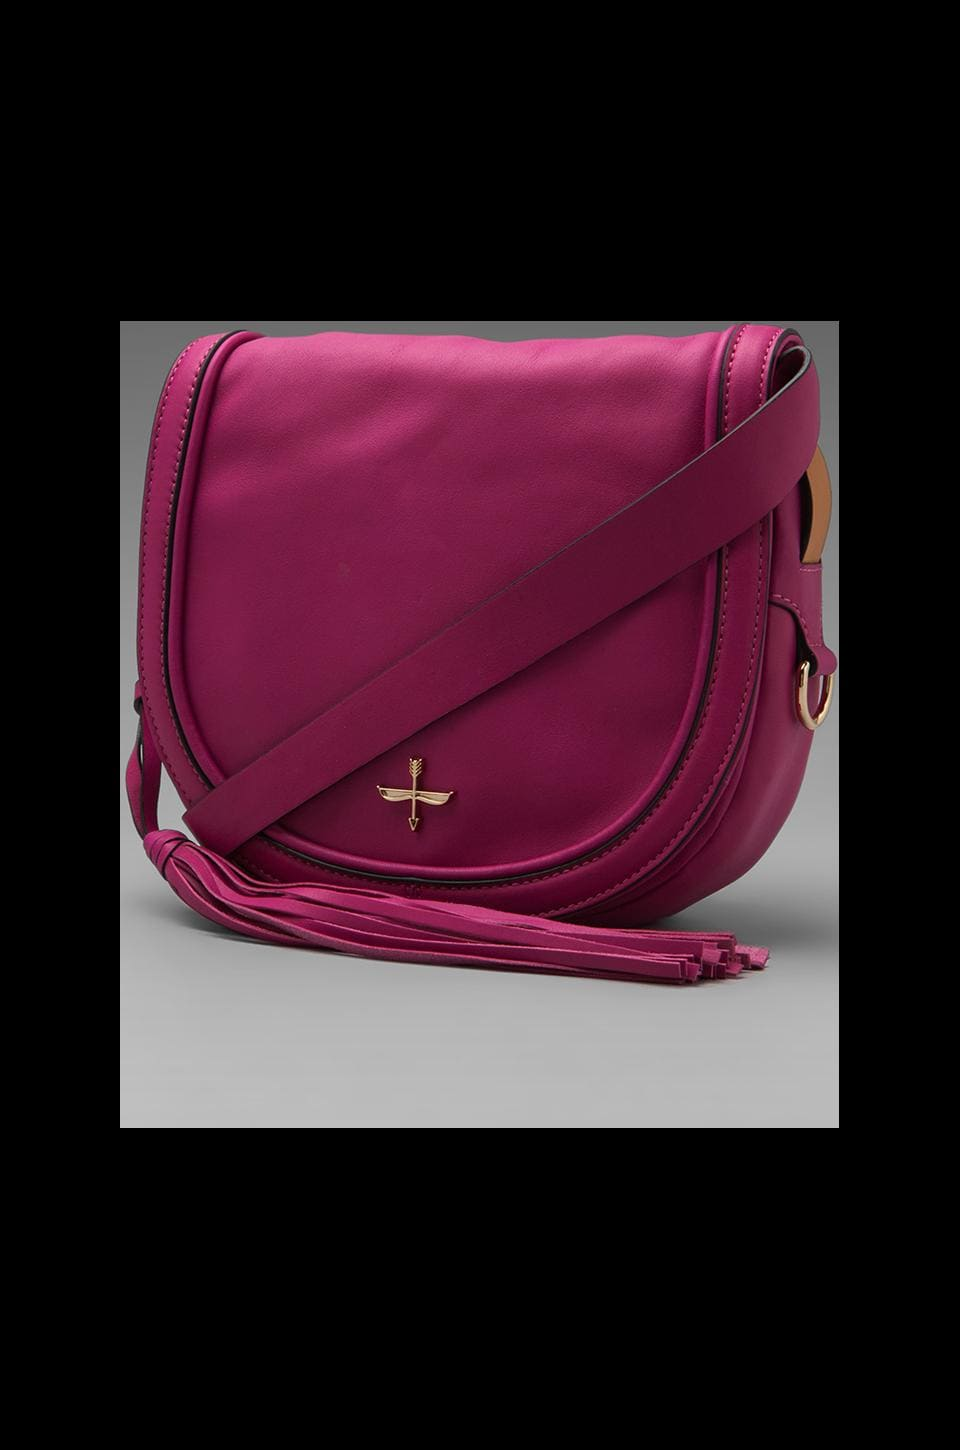 Pour La Victoire Nina Mini Saddle Bag in Fuchsia